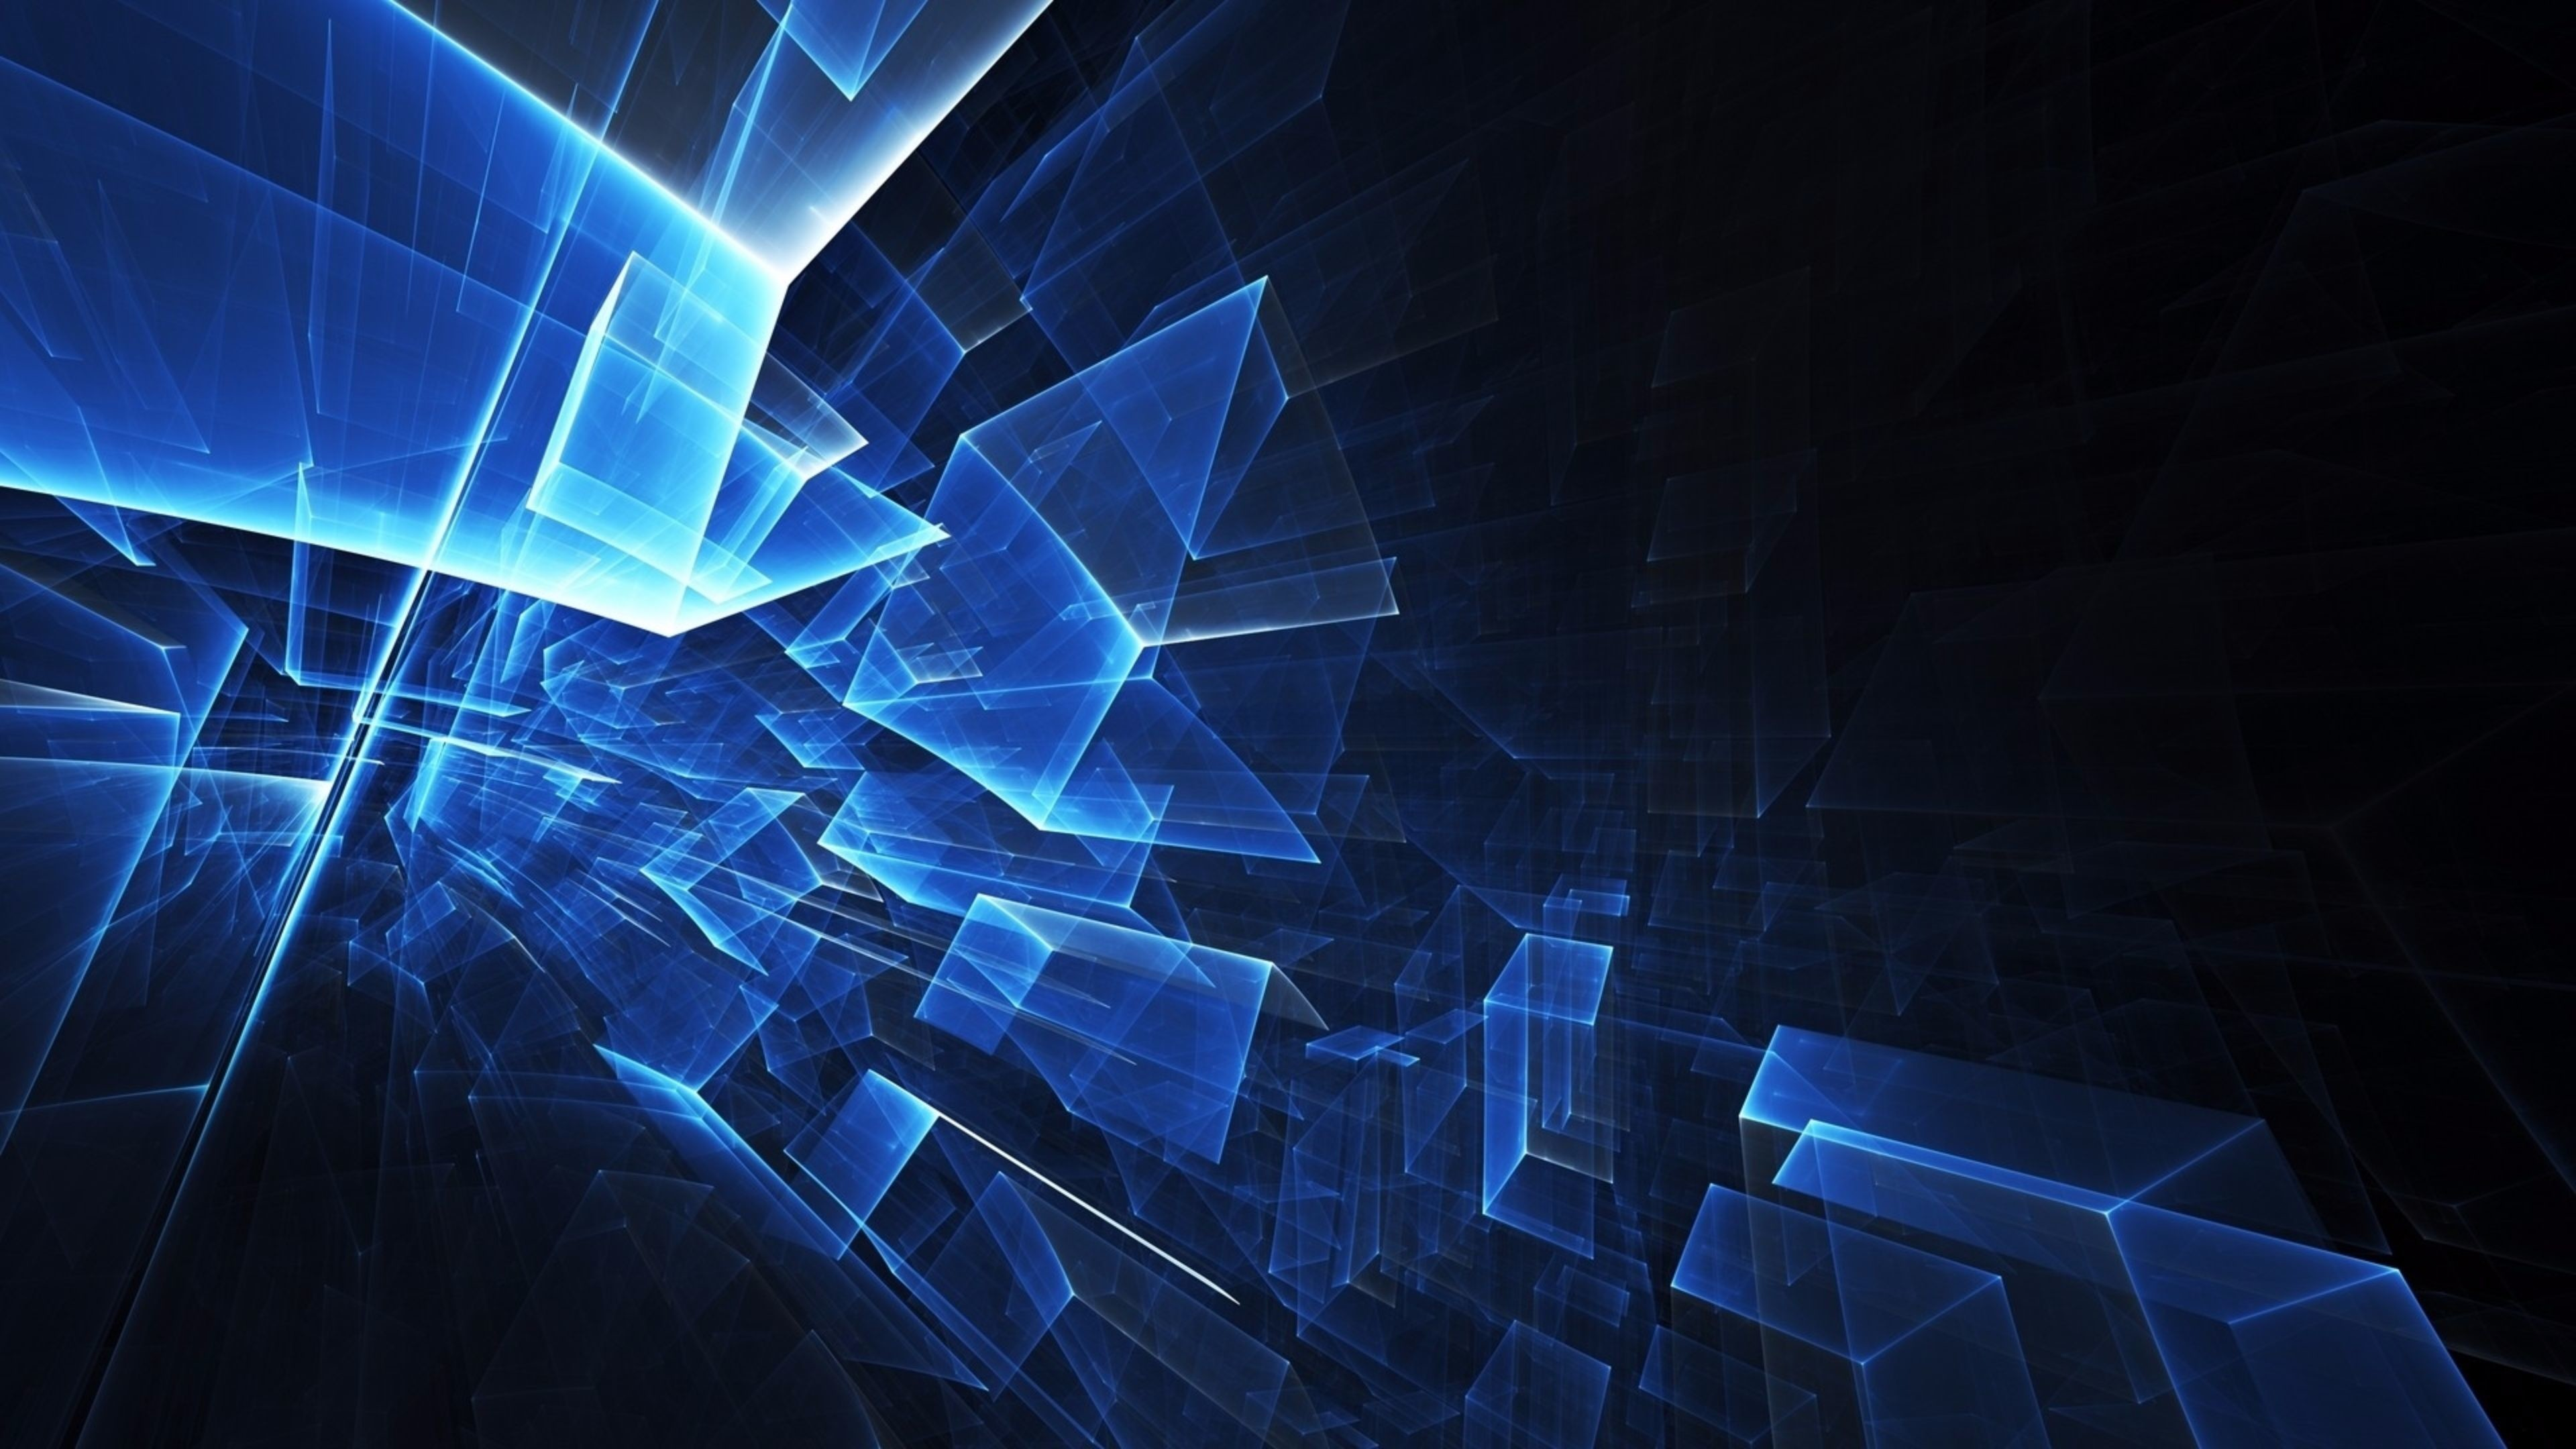 … Wallpapers 4k Abstract Wallpaper Blue Cubes 4K | Free Computer  Backgrounds abstract wallpaper …